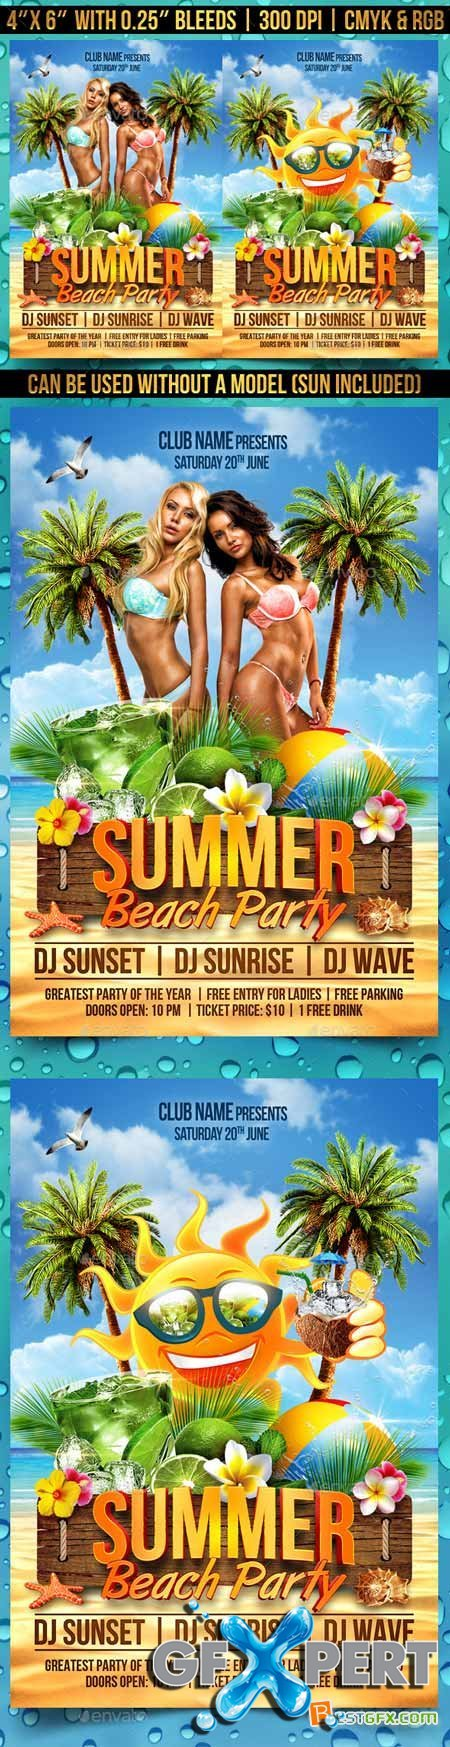 Graphicriver Summer Beach Party Flyer 11321998